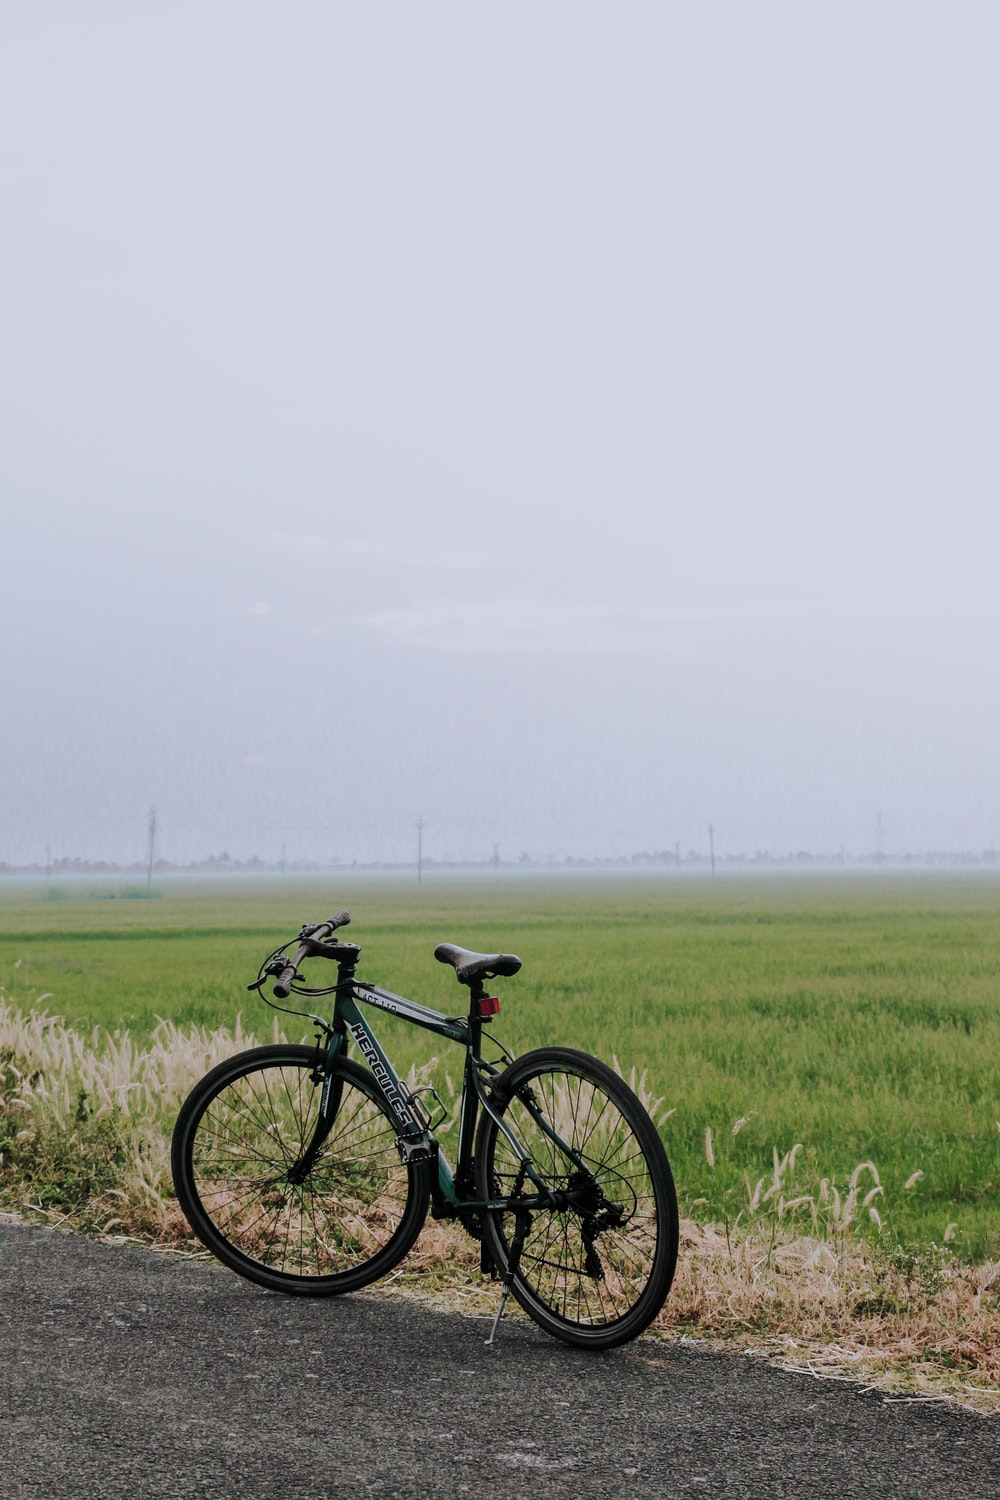 black and gray mountain bike on green grass field during daytime